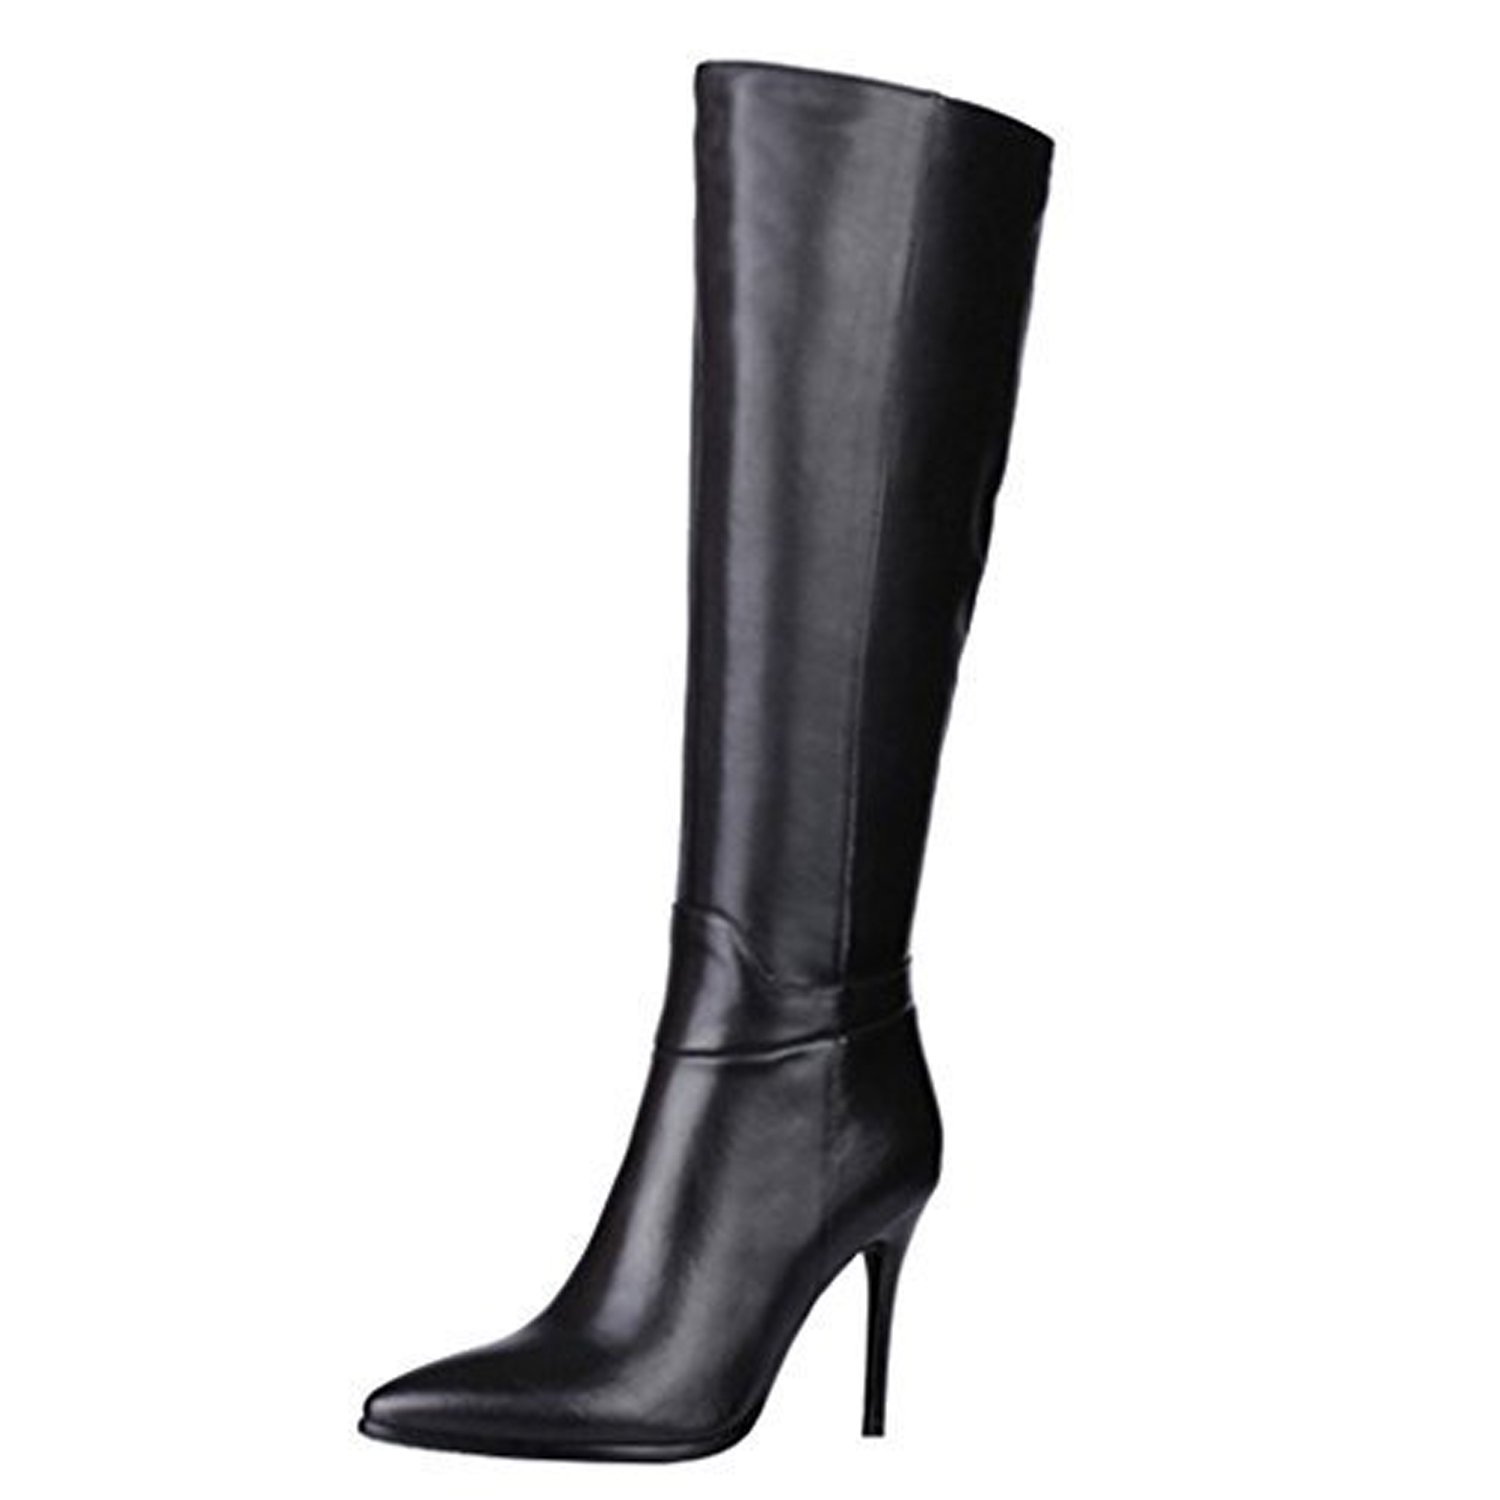 VOCOSI Women's Classic Side-Zip High Heels Leather Riding Boots Pointy Toe Knee-High Dress Boot B01N9J966H 8.5 M US|Black